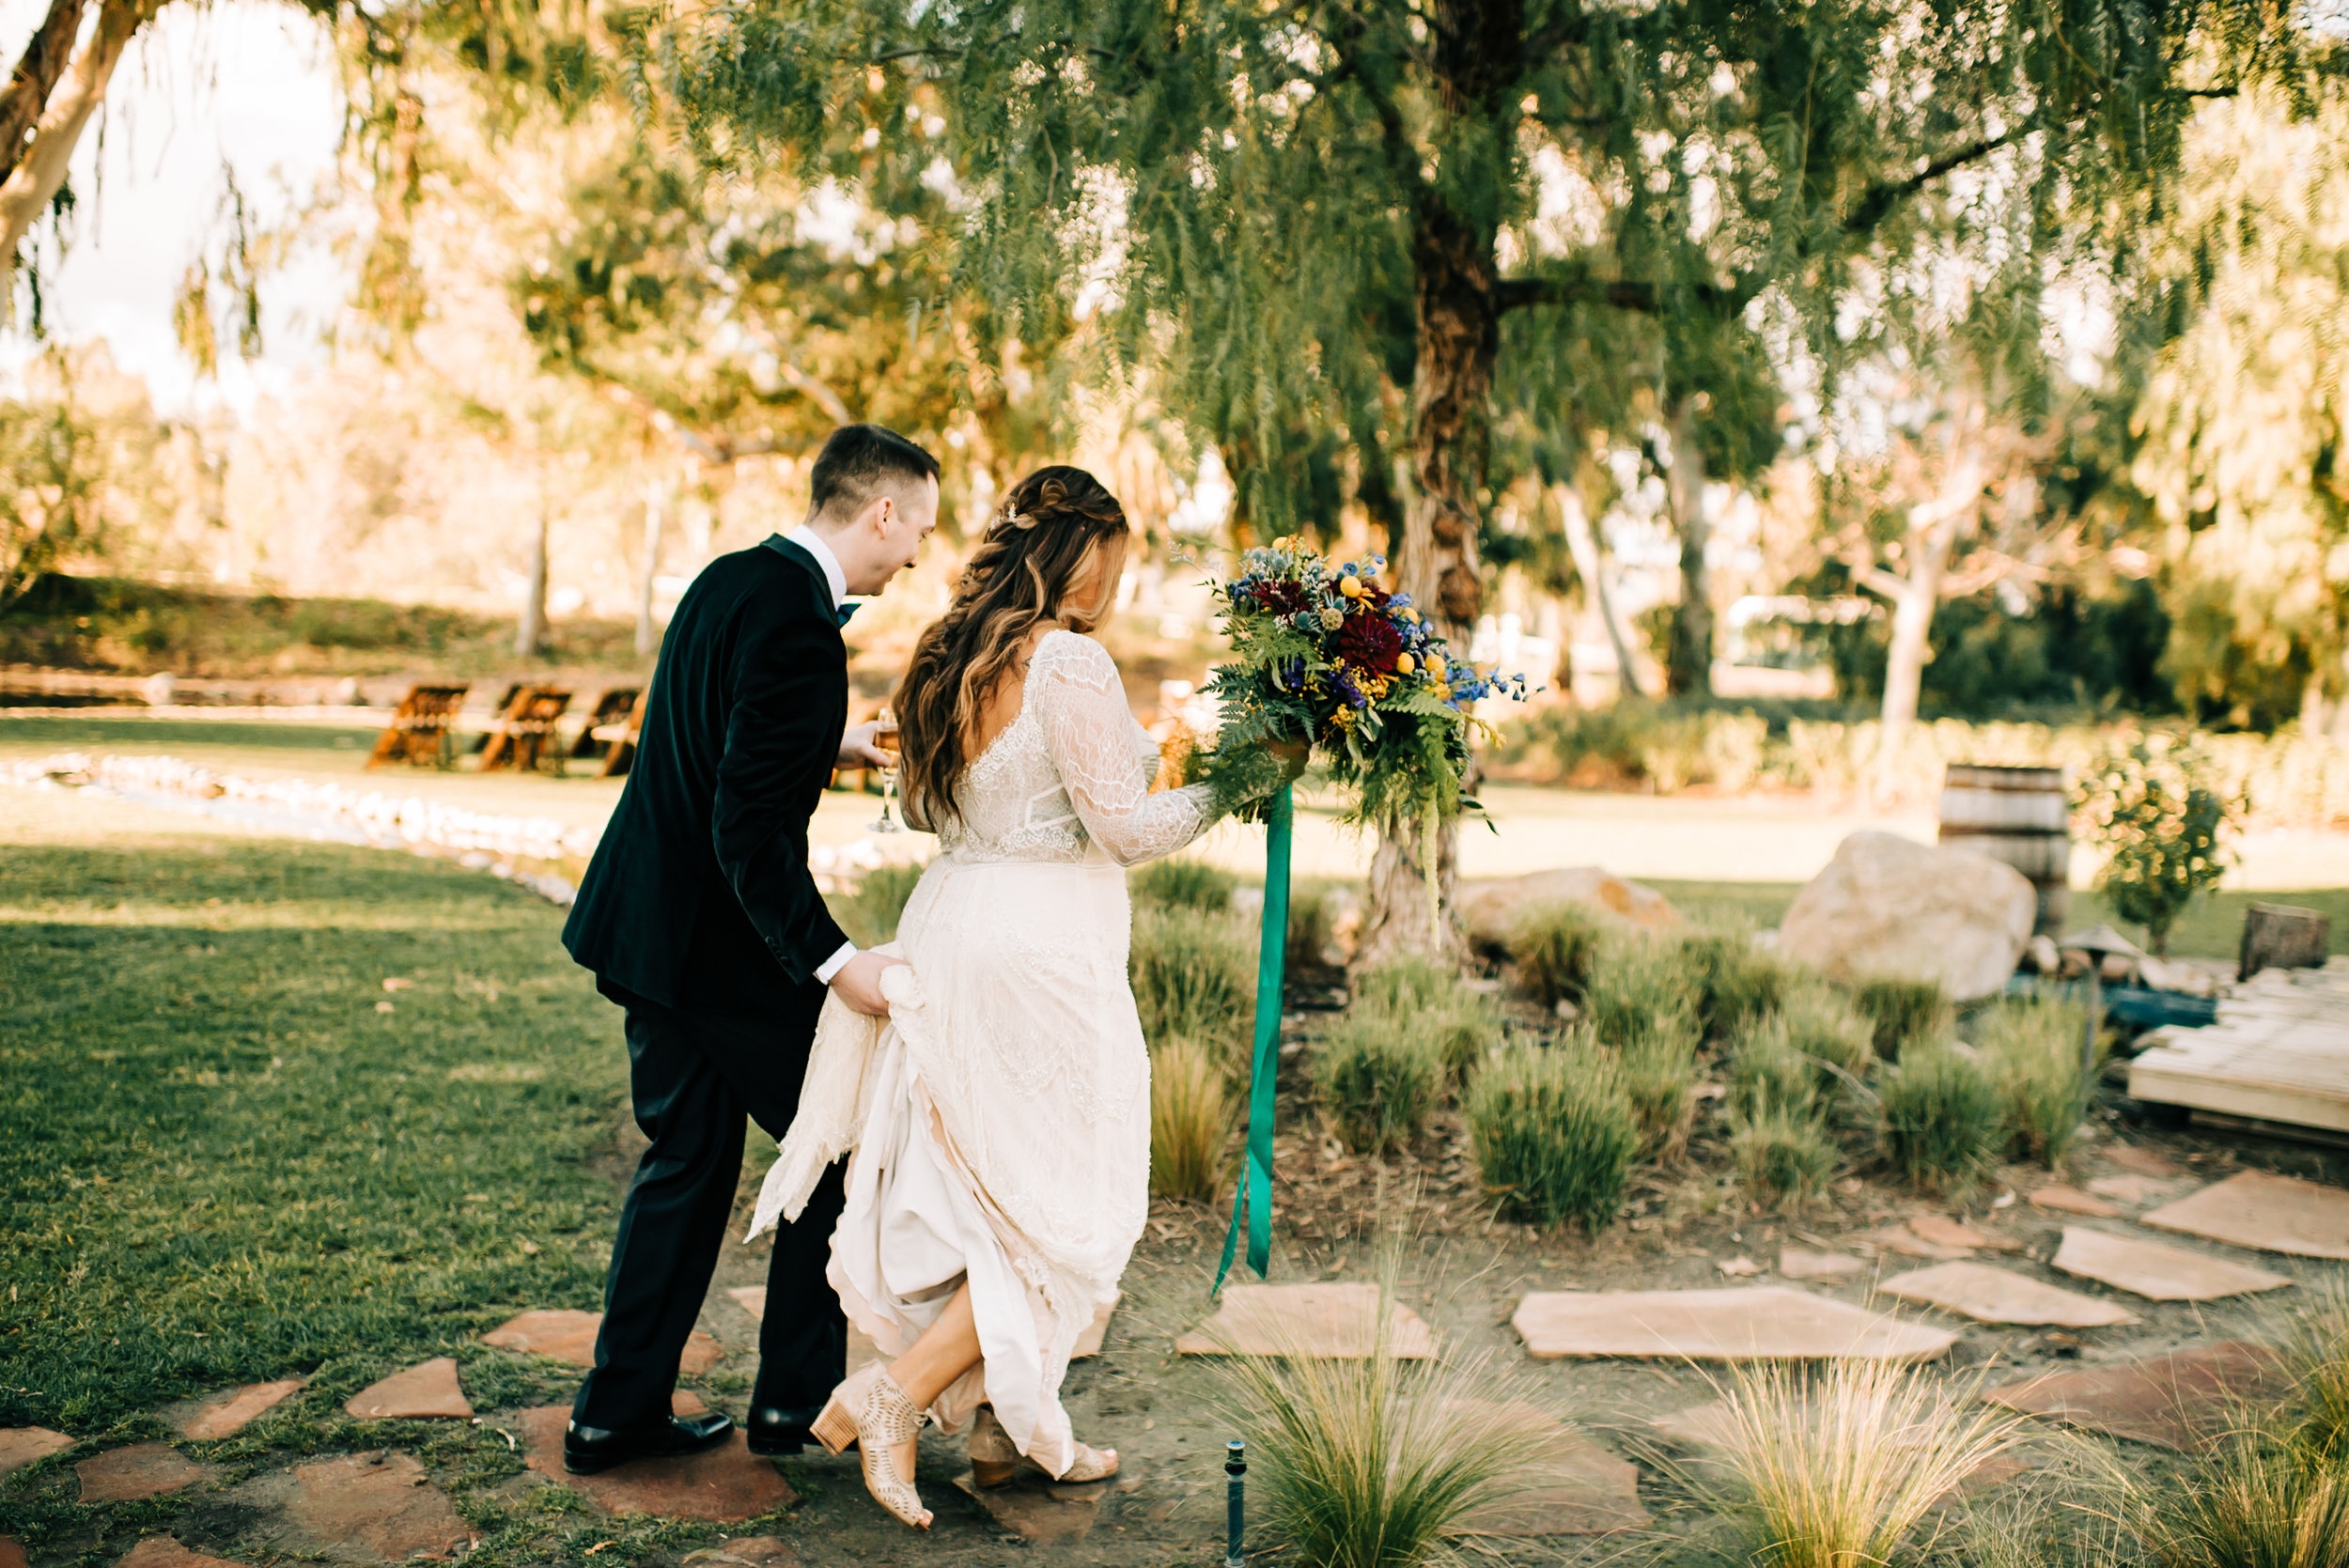 bay area nontraditional wedding photographer southern california boho wedding love light magic san francisco oakland northern california-670.jpg